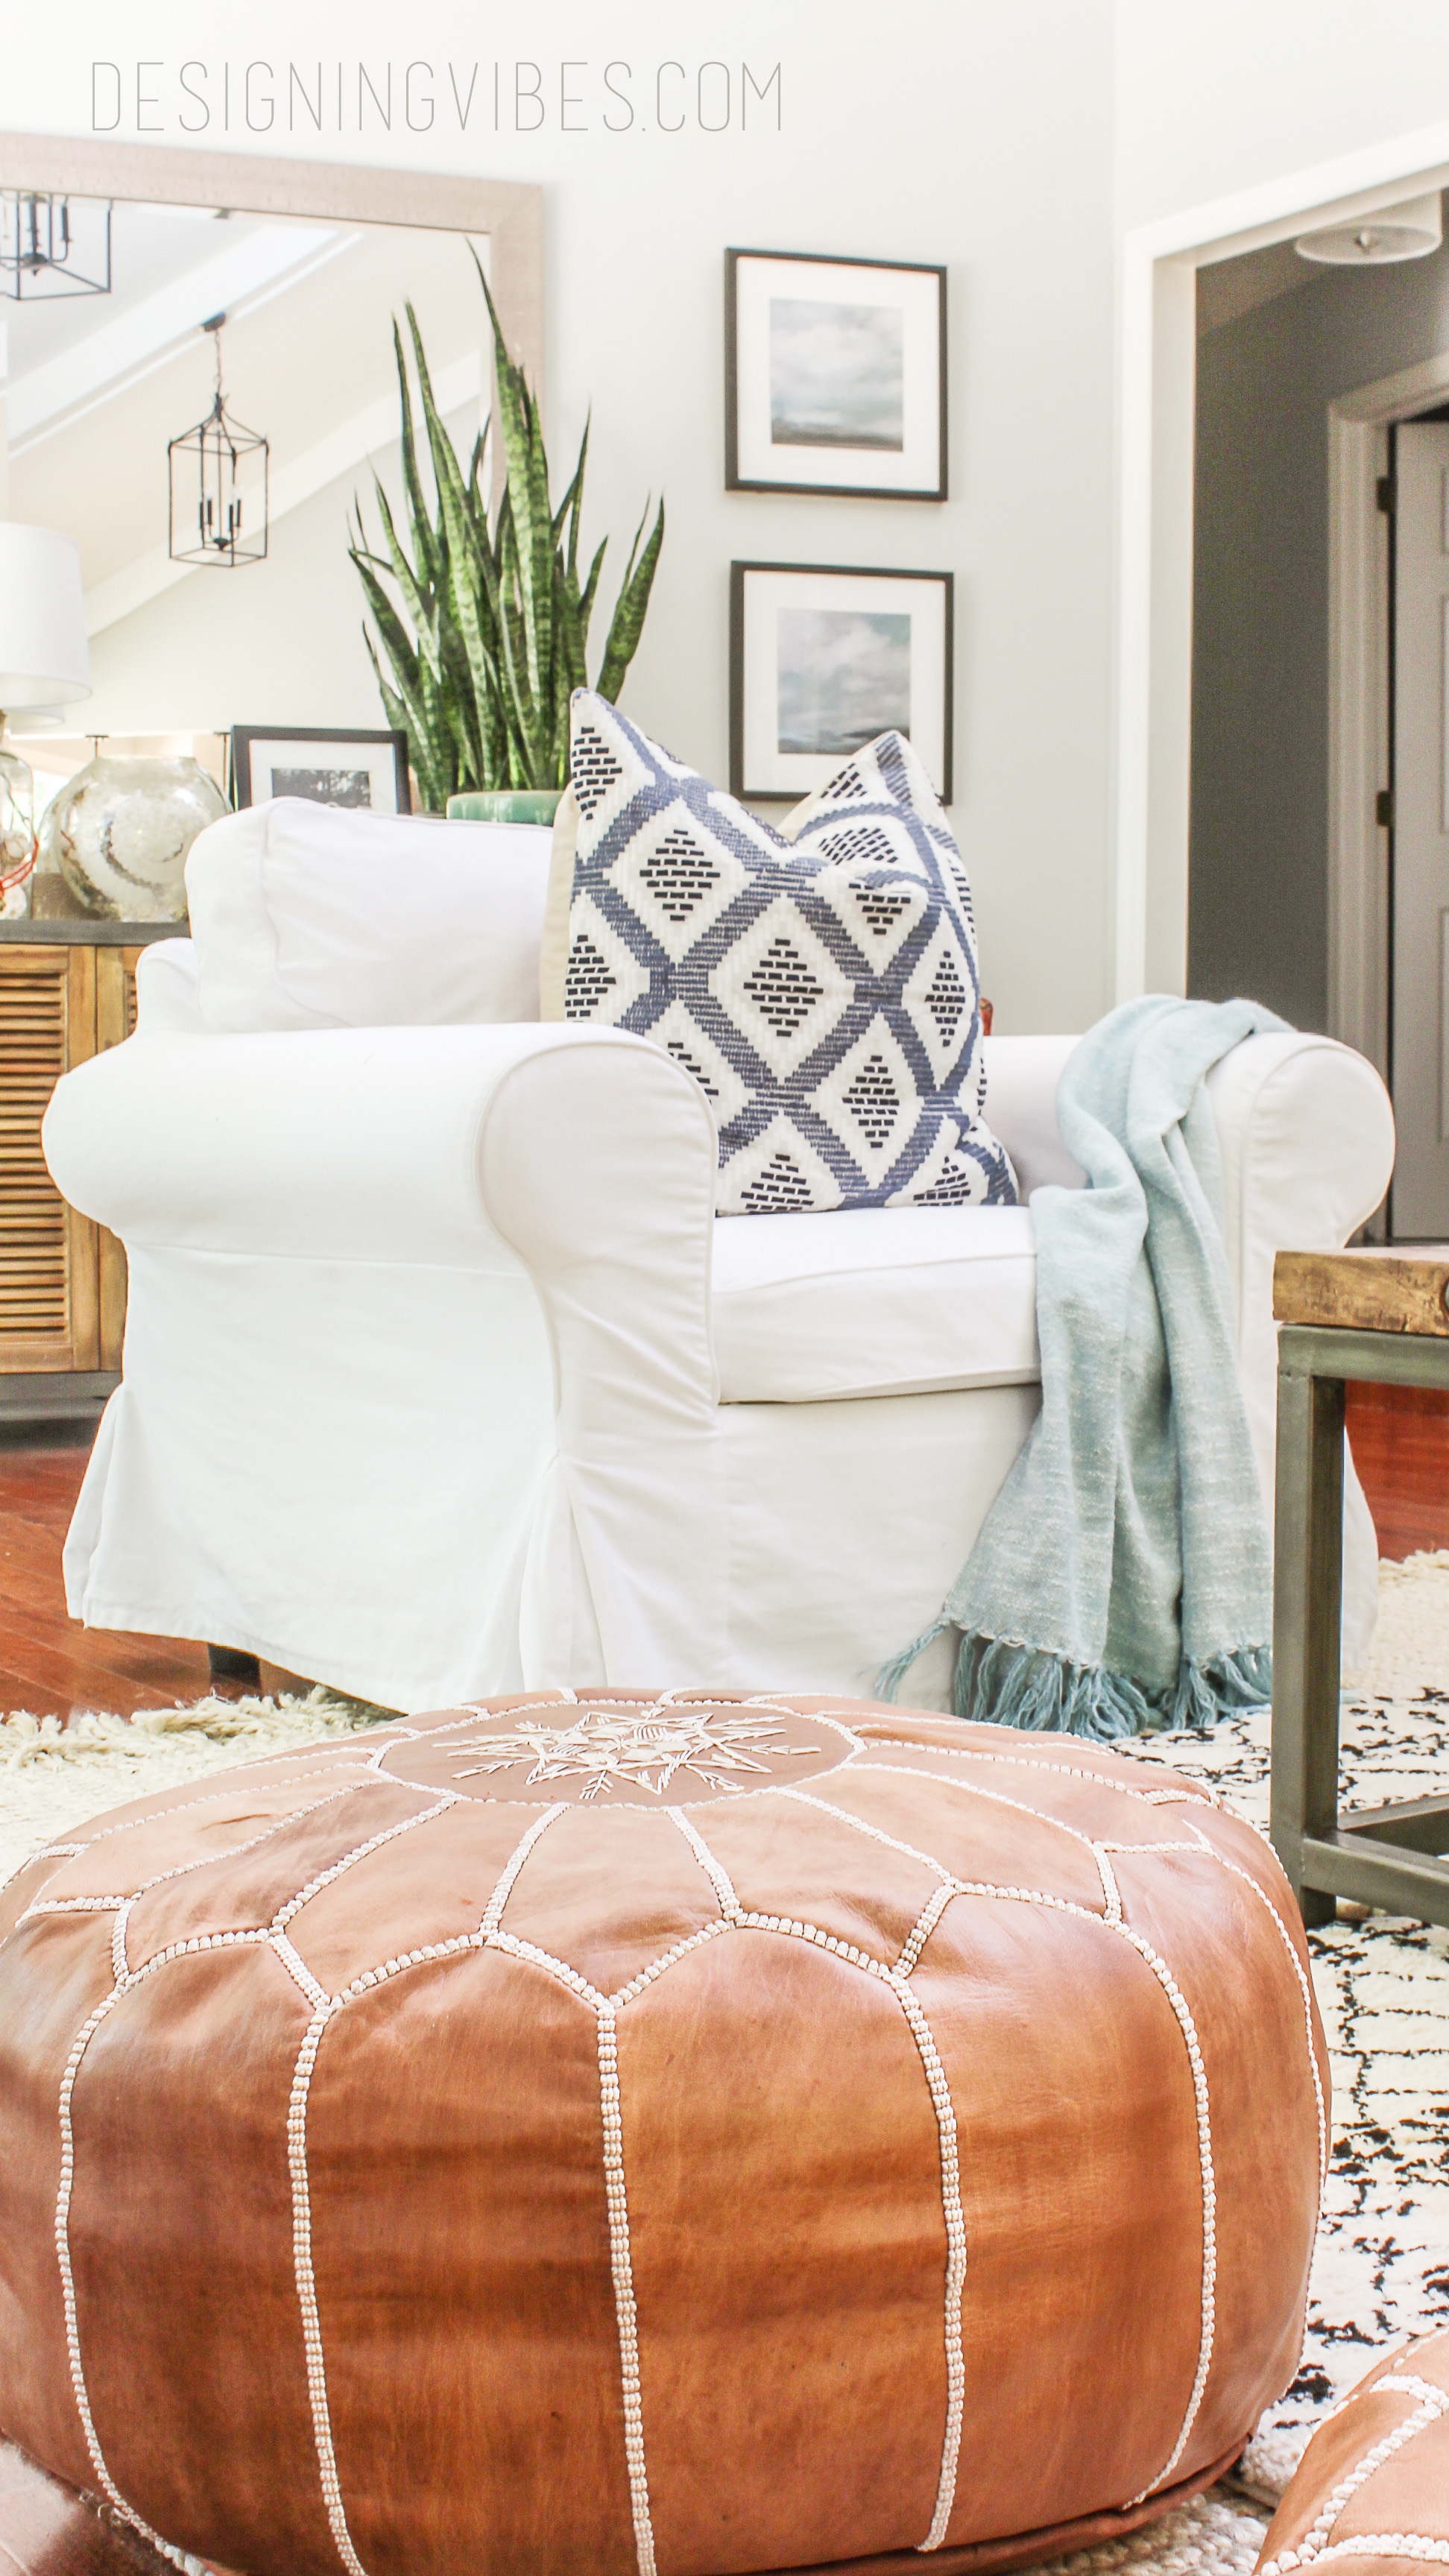 How To Buy Leather Moroccan Poufs On The Cheap Boho